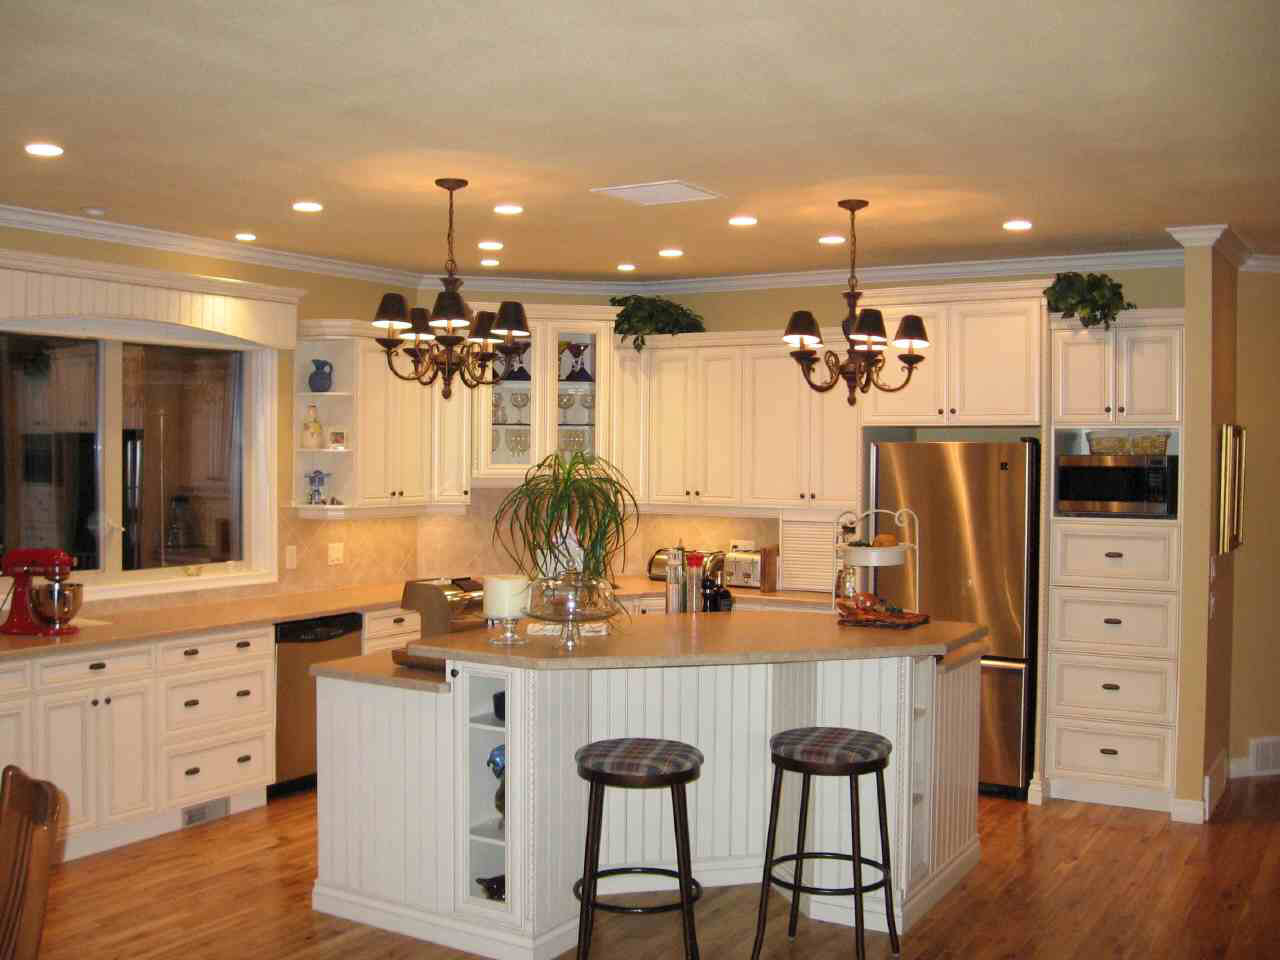 Peartreedesigns beautiful modern kitchen interiors for Beautiful kitchen designs